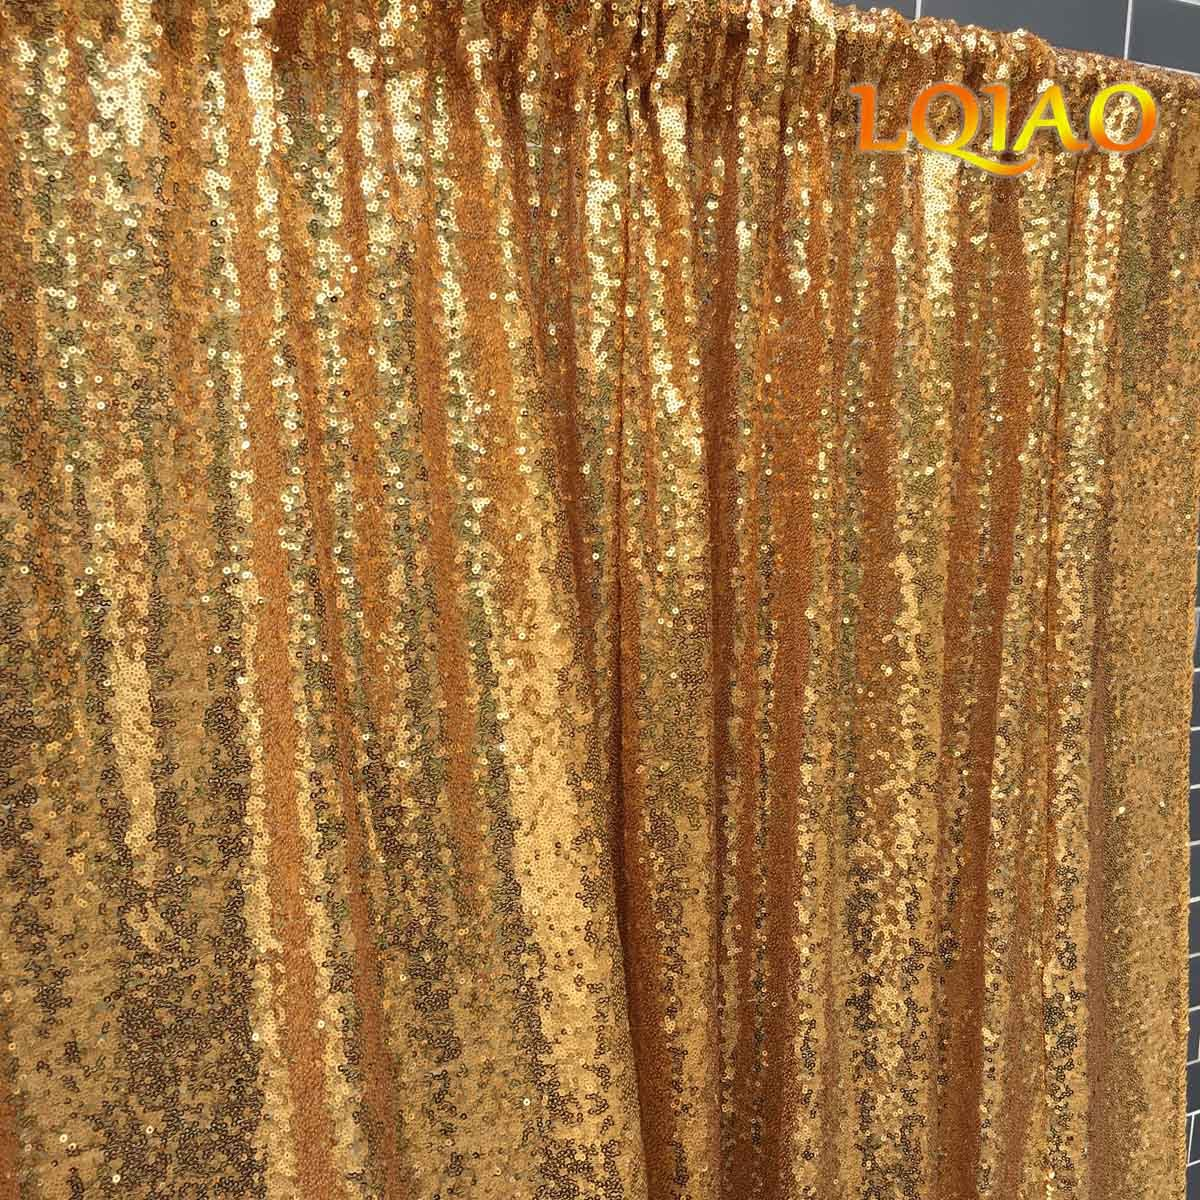 LQIAO 20x10ft-Sequin Backdrop Gold Sequin Curtain Photography Booth Backdrop for Wedding/Party Decoration(600x300cm)